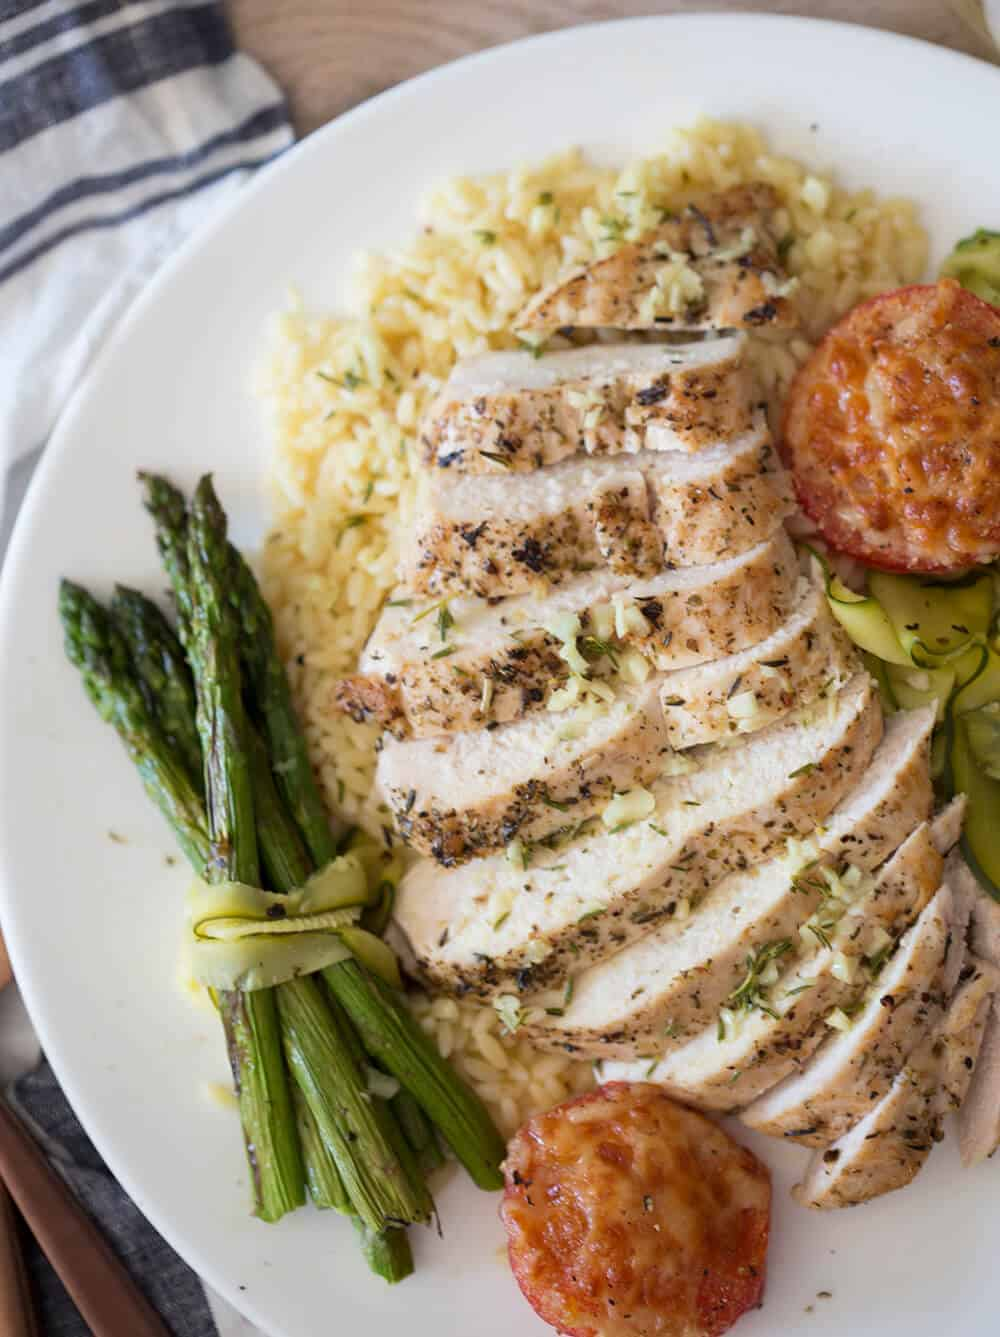 Chicken breast with garlic wine sauce on a plate with rice and asparagus.